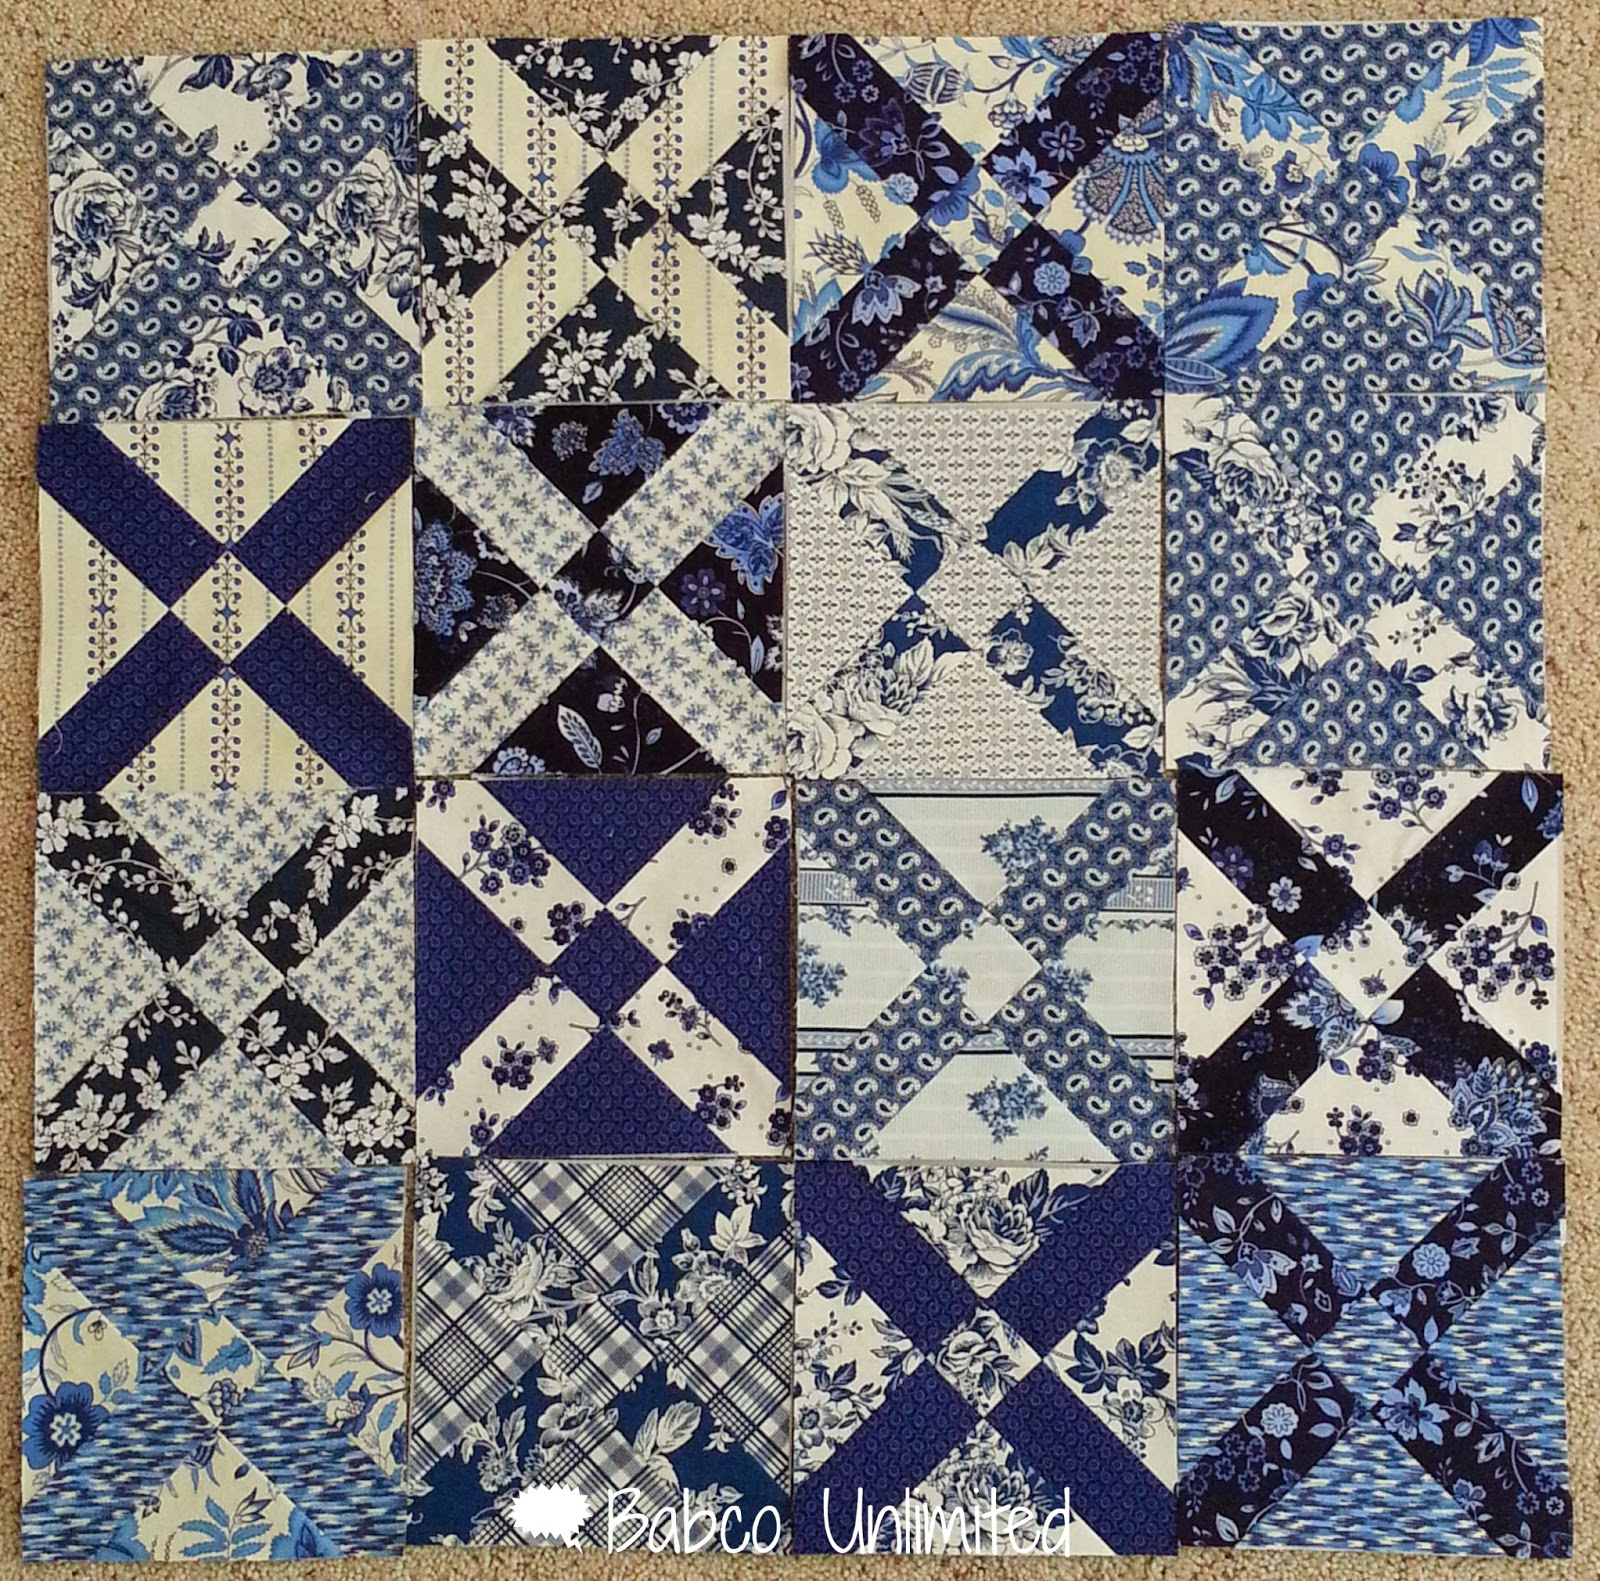 BabcoUnlimited.blogspot.com -- Old Italian Quilt, Blue & White quilt